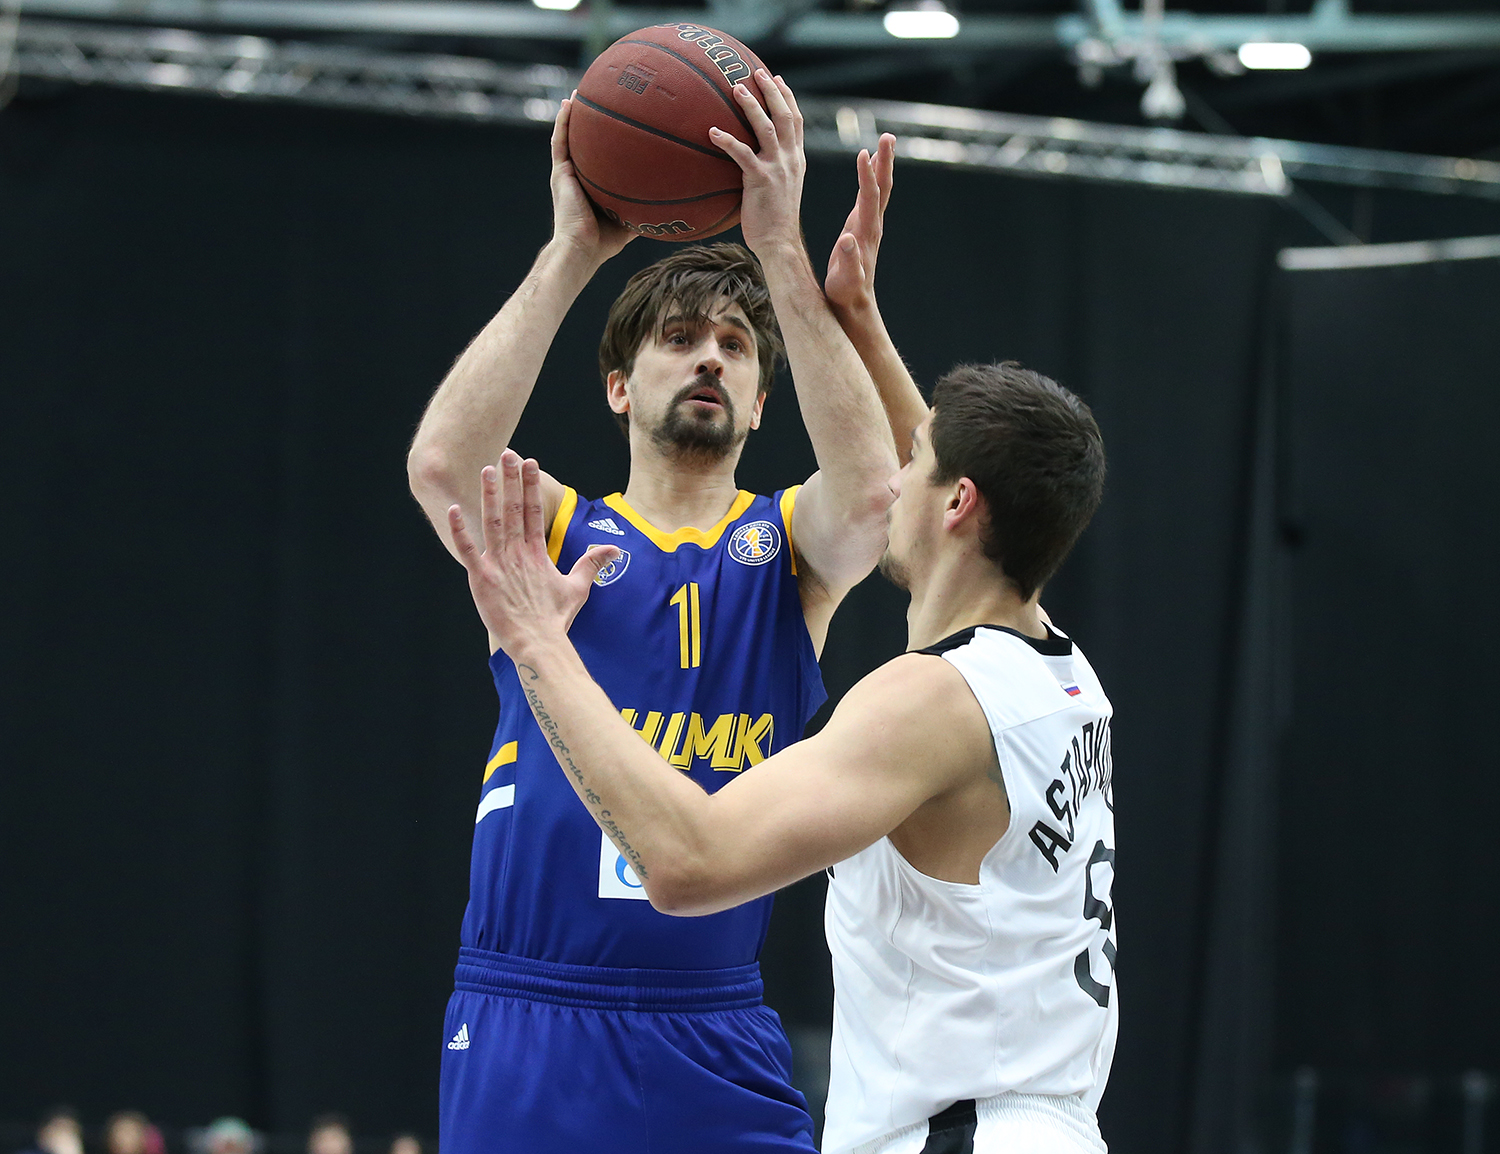 Timma Forces OT, Khimki Avoids Nizhny Upset